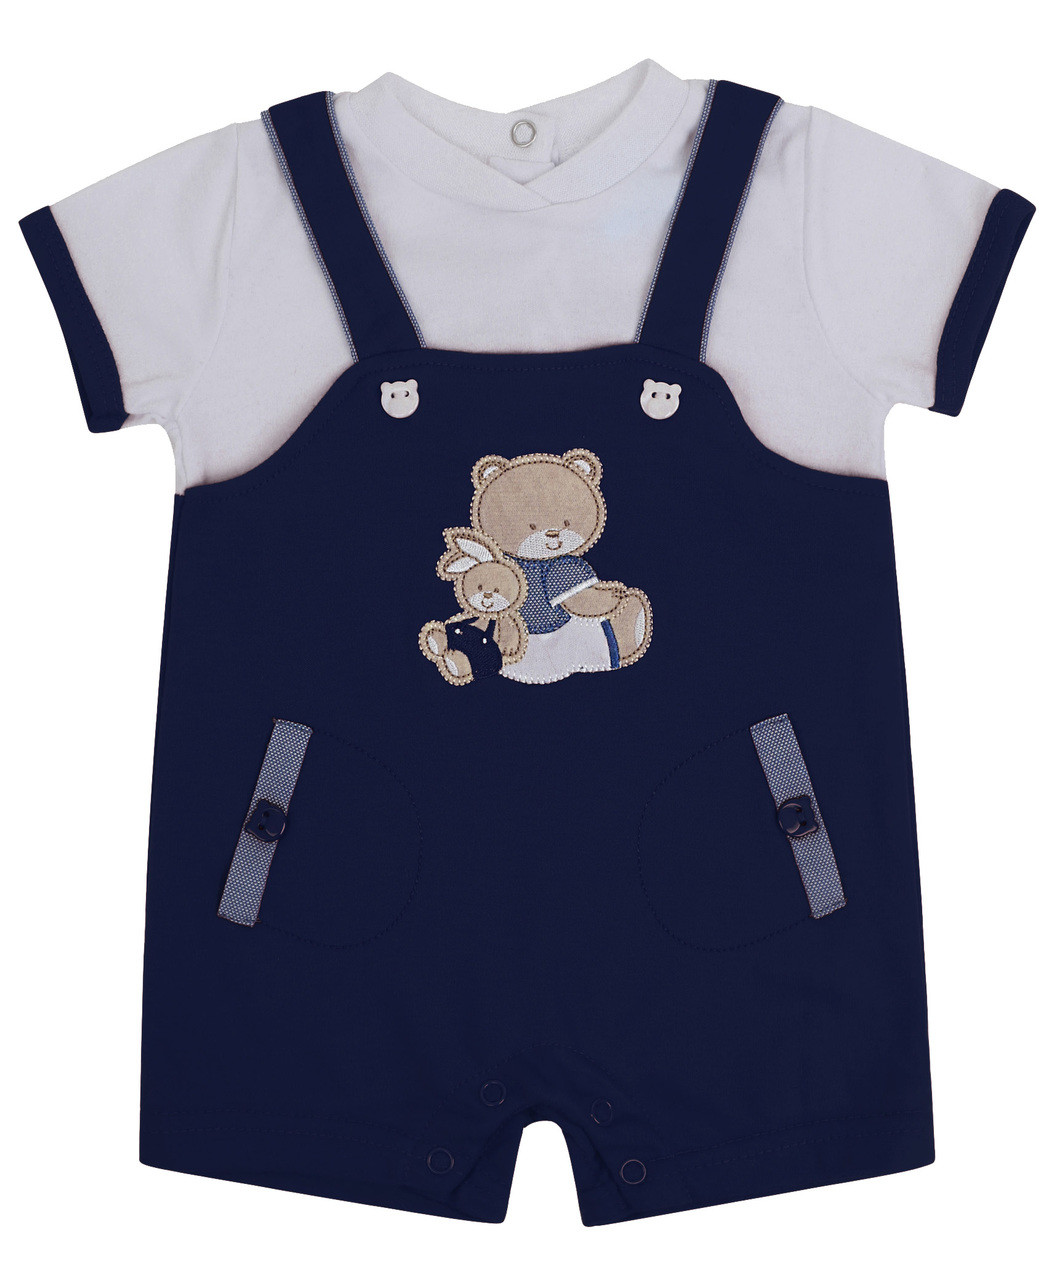 ff87453a22e89 Baby Boys Dungarees Romper 0-12 Months In Three Colours